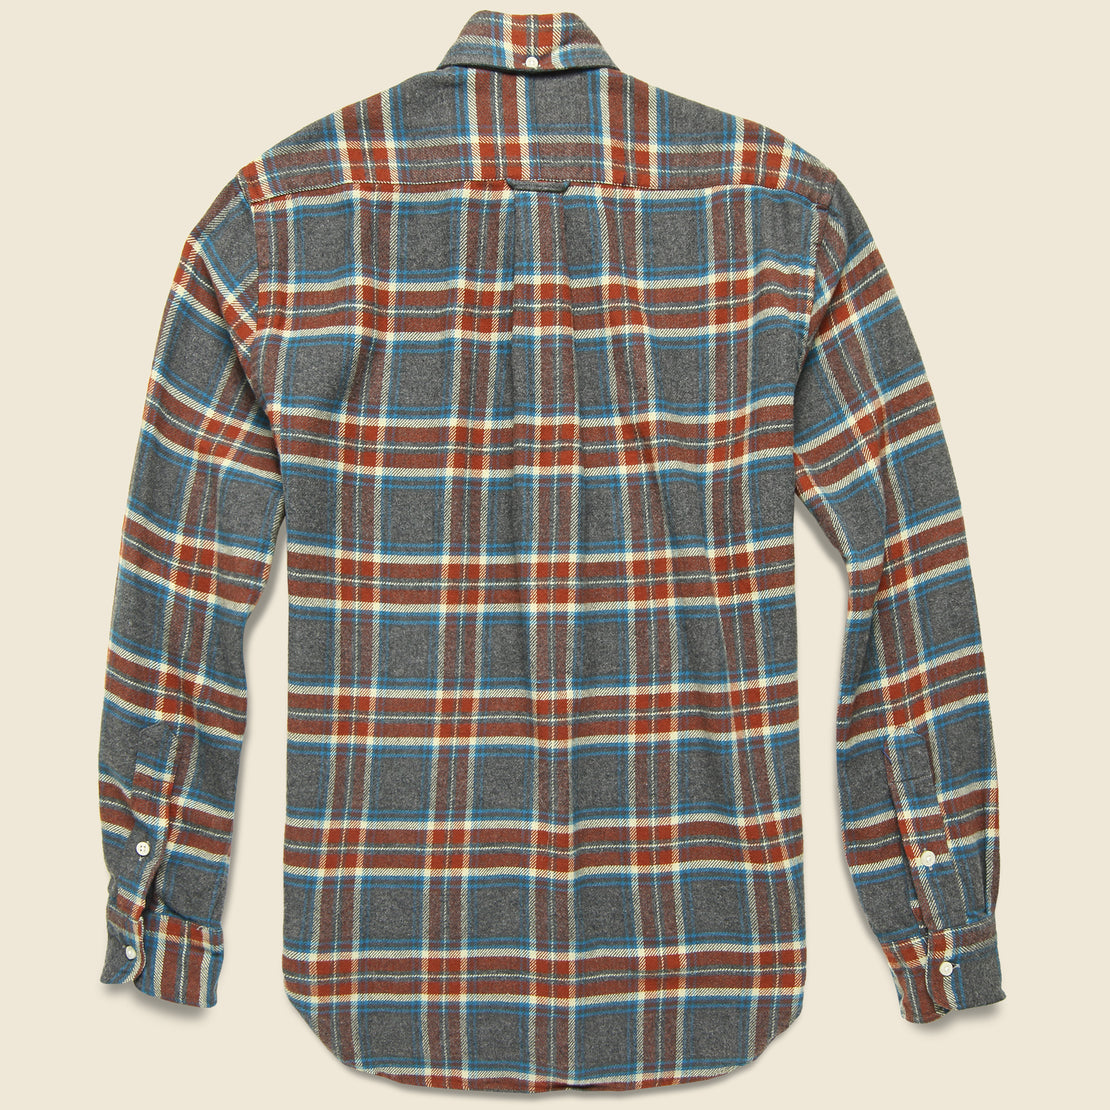 Soft Flannel - Red/Blue